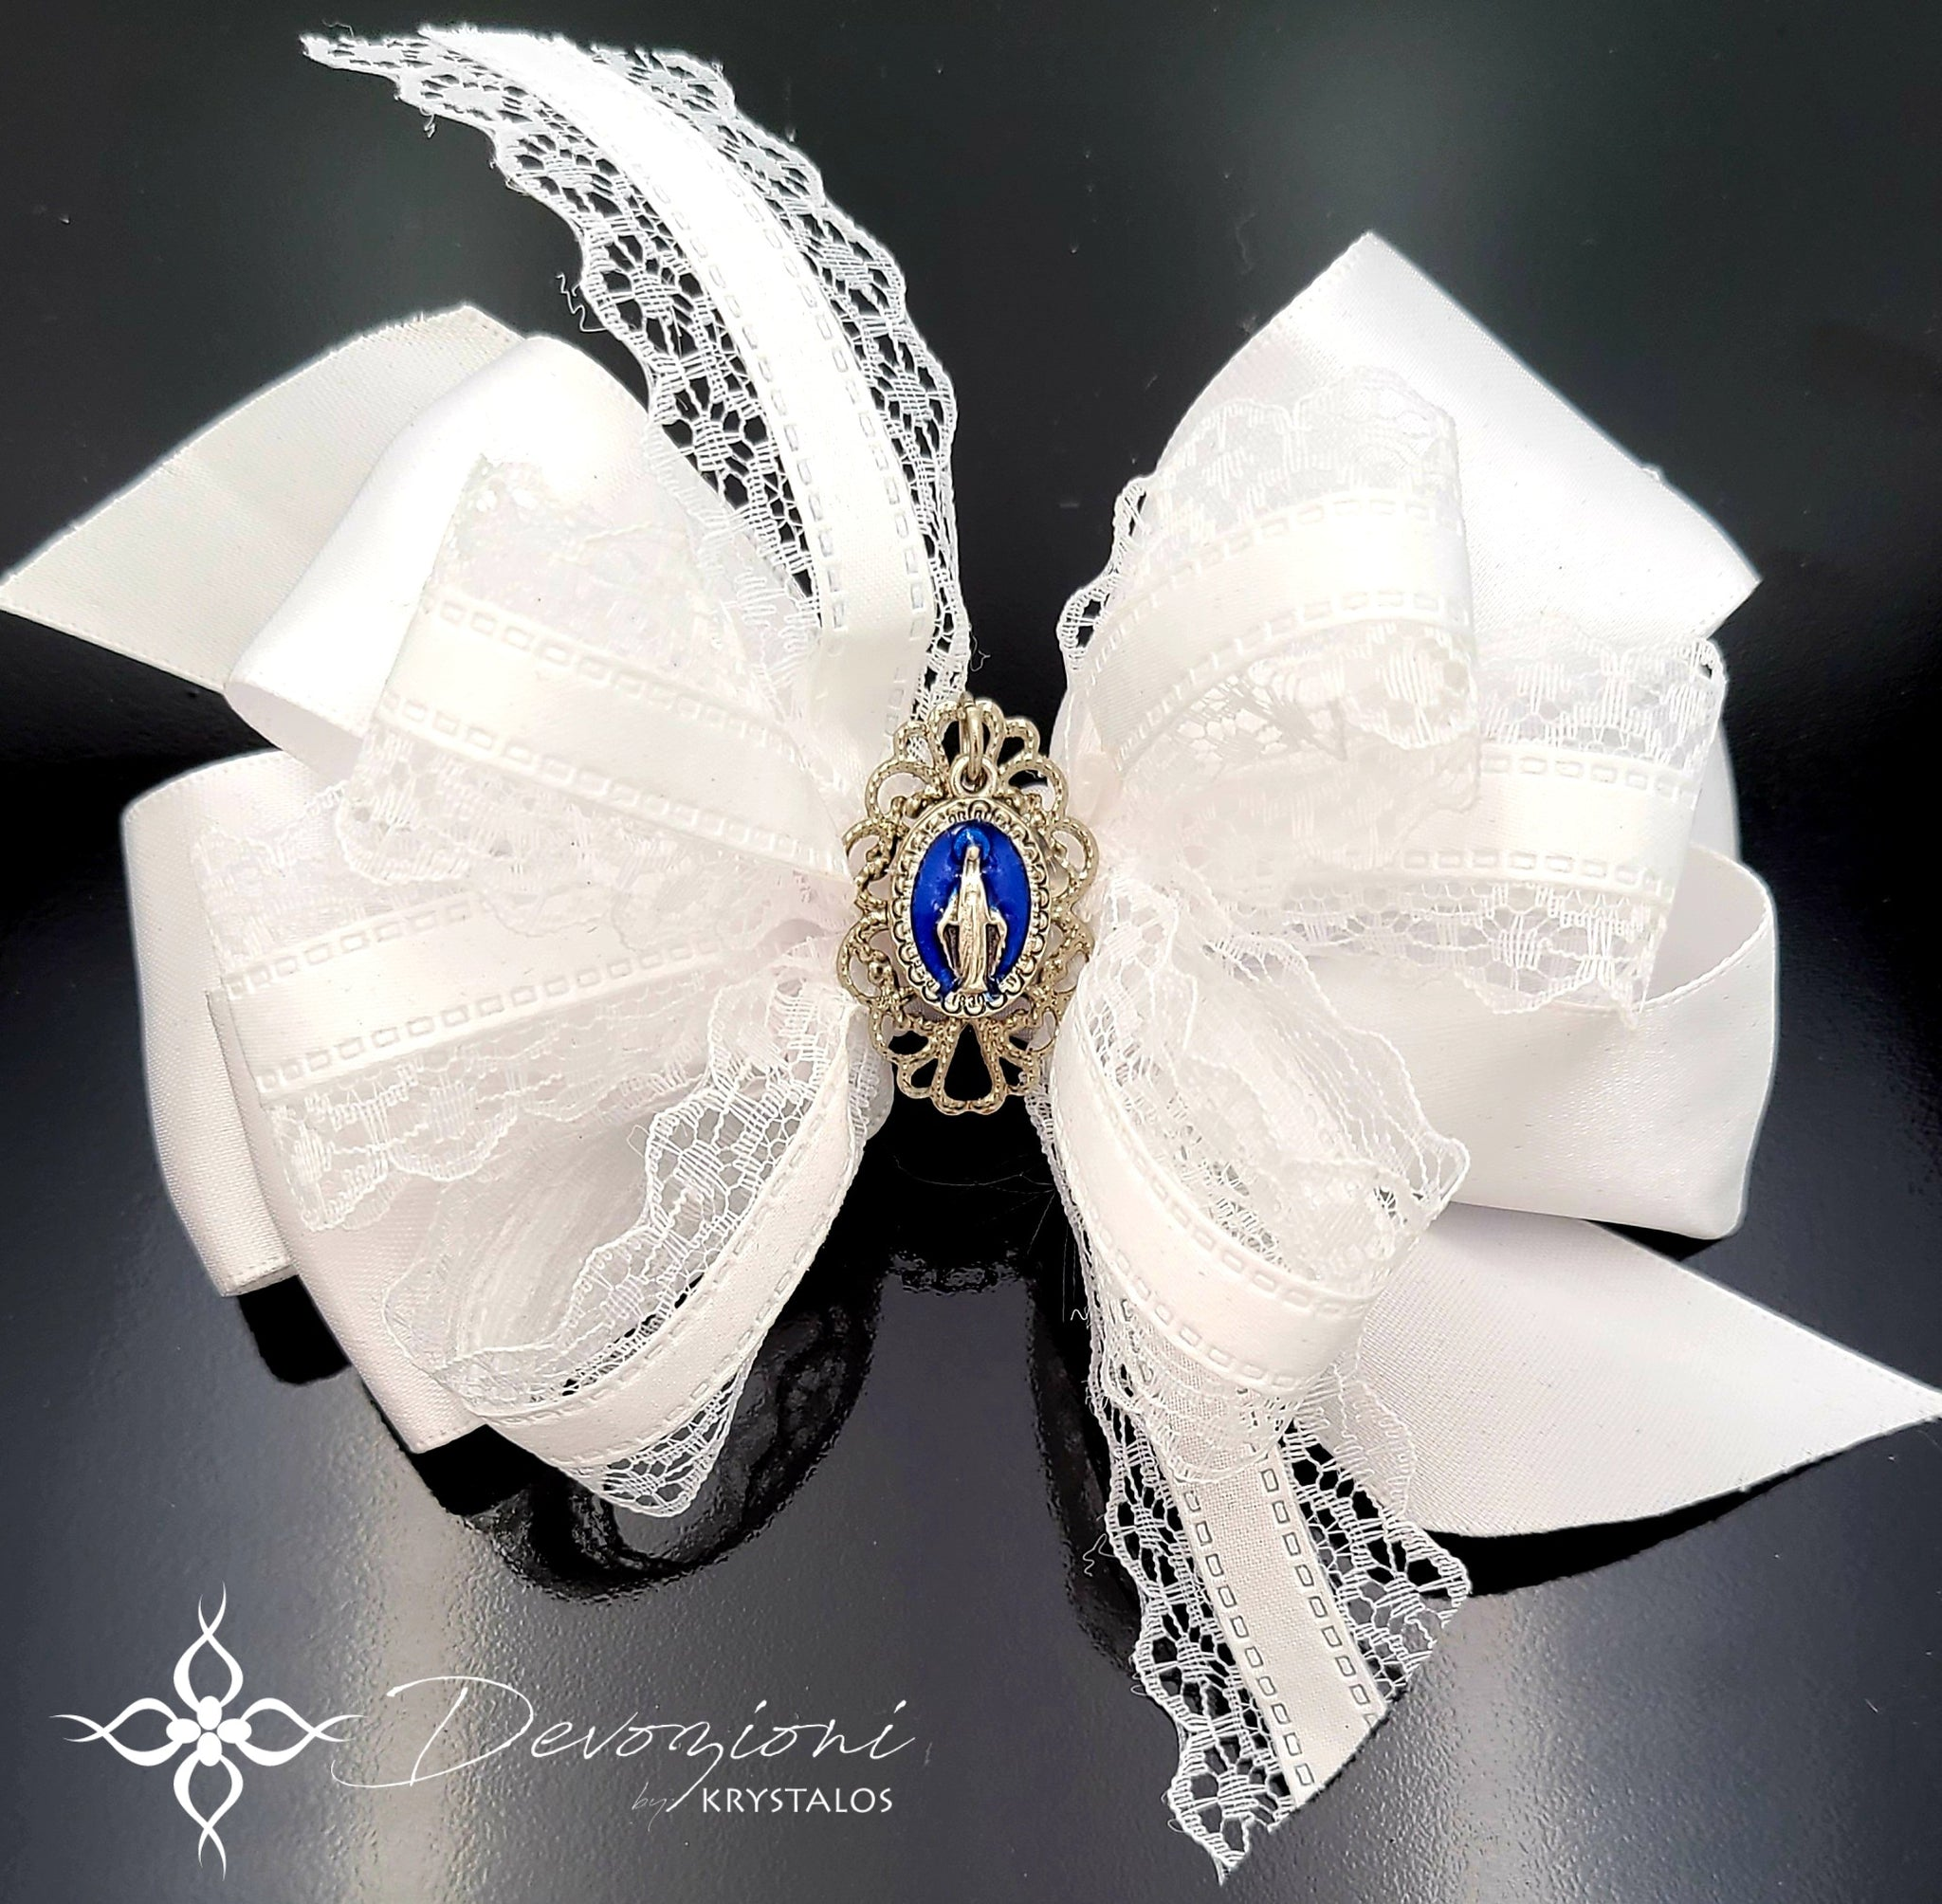 Virgin Mary (Miraculous Medal) Bow for Girls in White Satin and Lace - Floreli + Devozioni